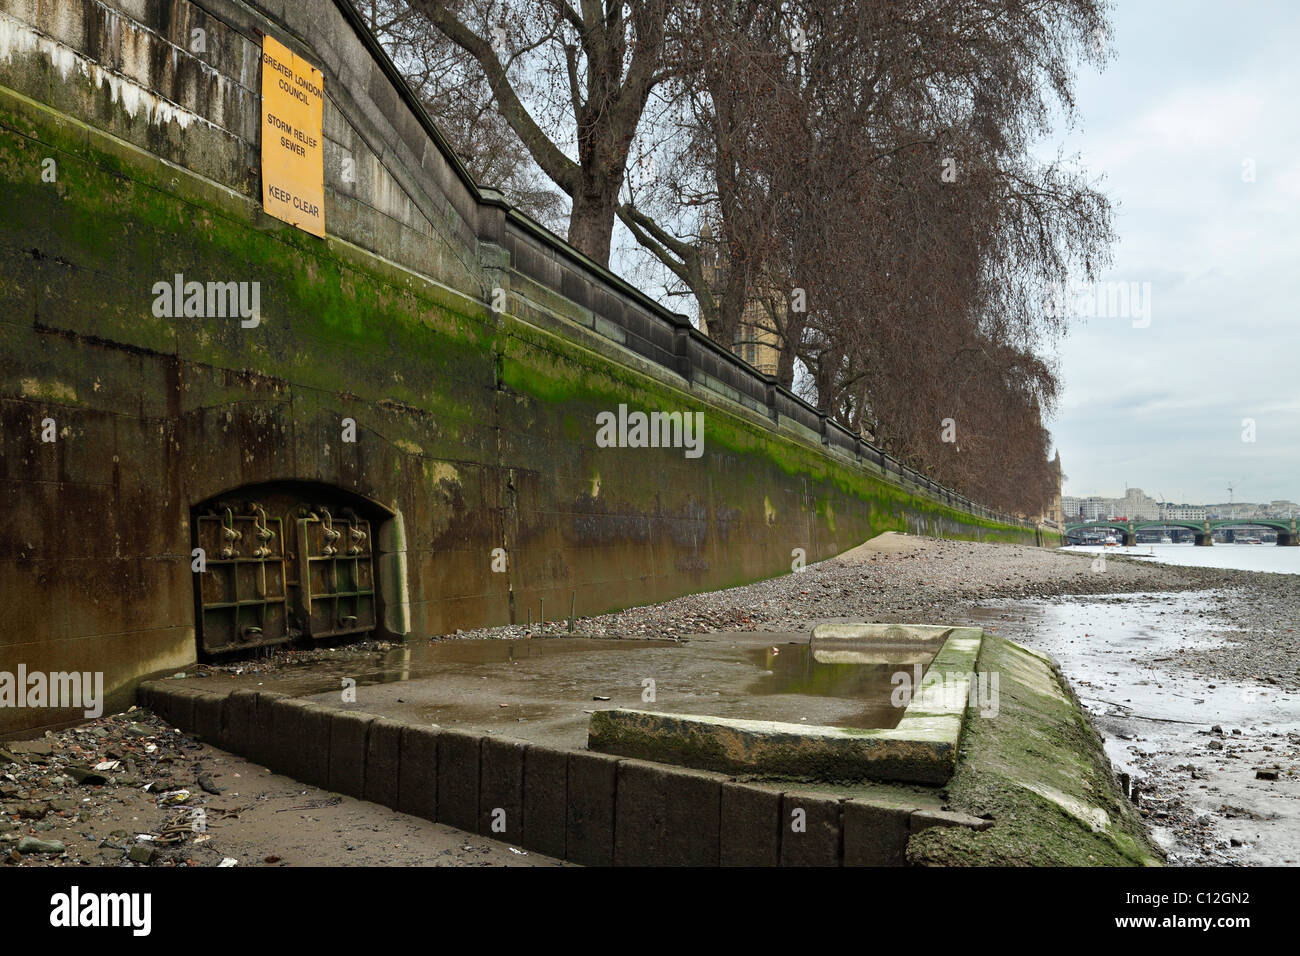 Storm Relief Sewer outlet flowing into the river Thames. - Stock Image